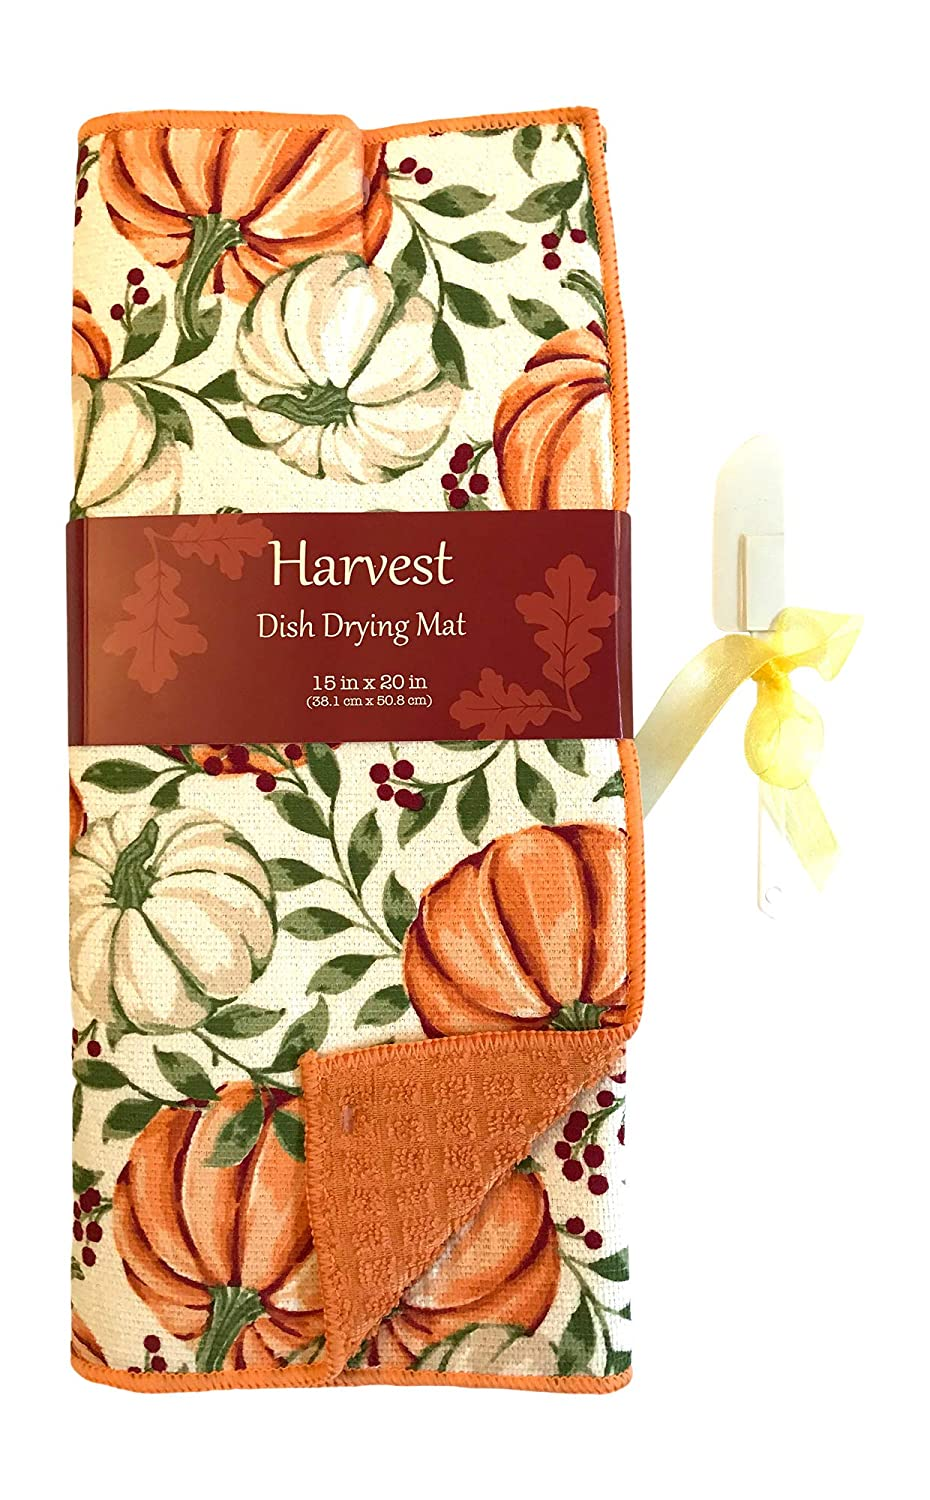 Fall Harvest Dish Drying Mat Colorful Orange and White Pumpkins on Orange Backing